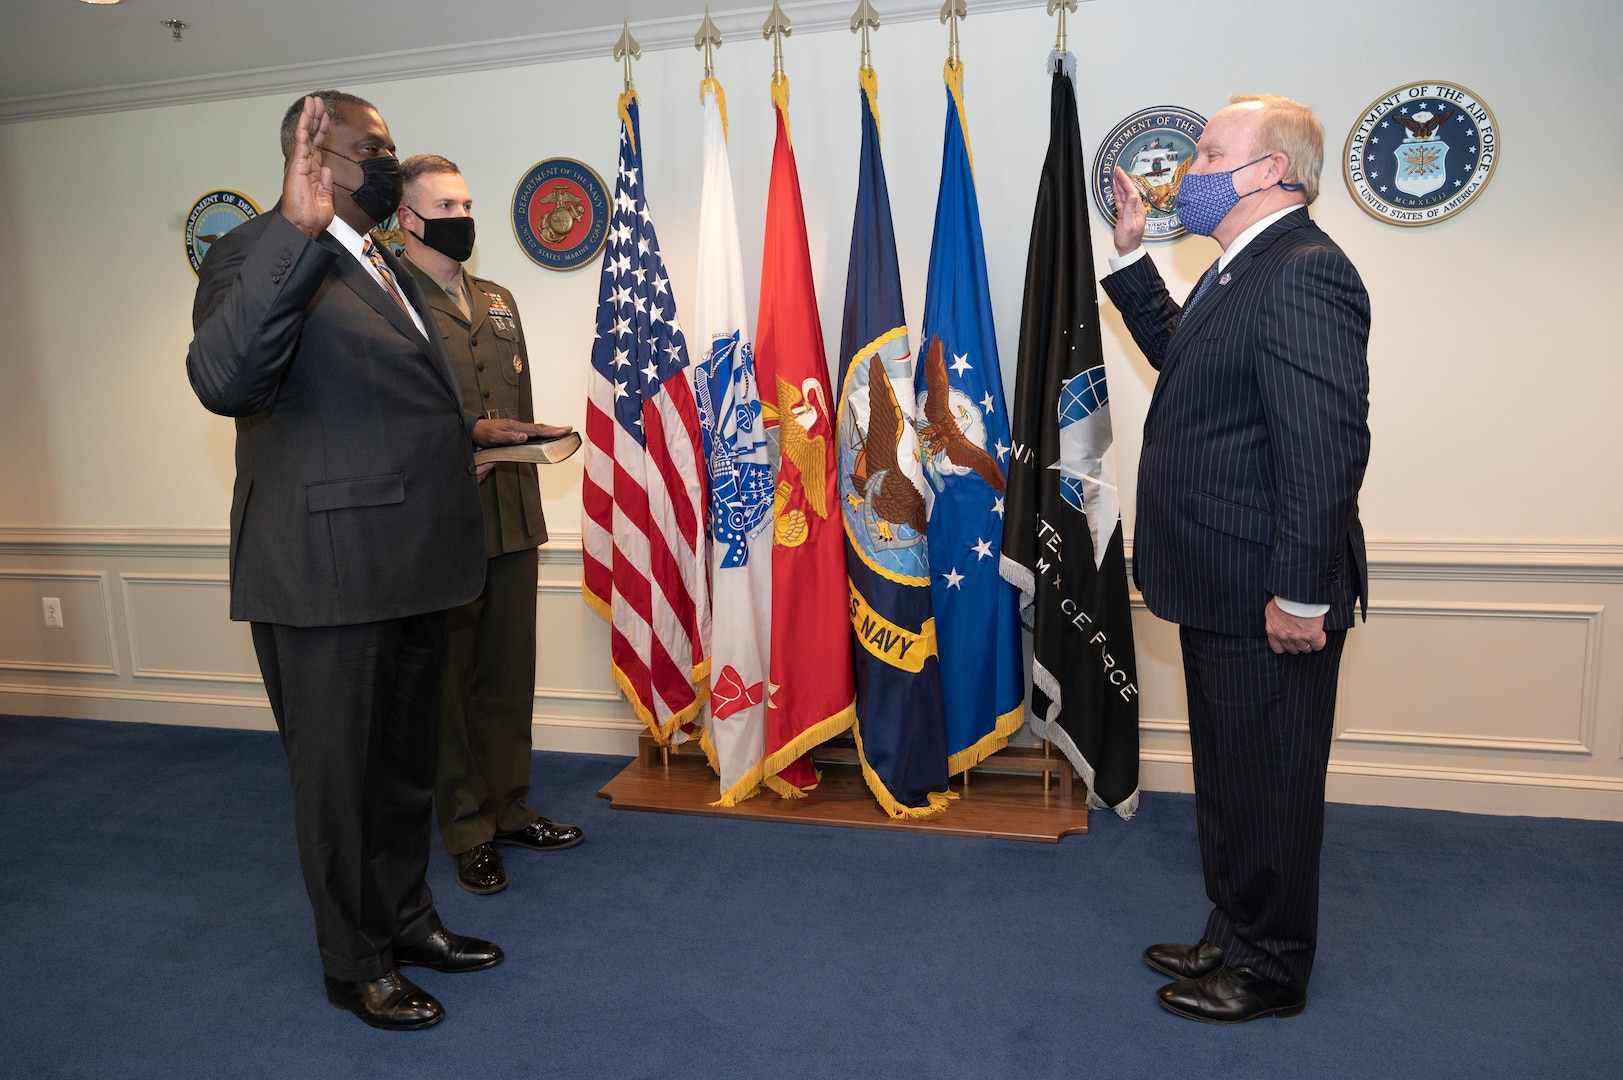 Defense Secretary Lloyd J. Austin III stands next to a man holding up his right hand facing another man.